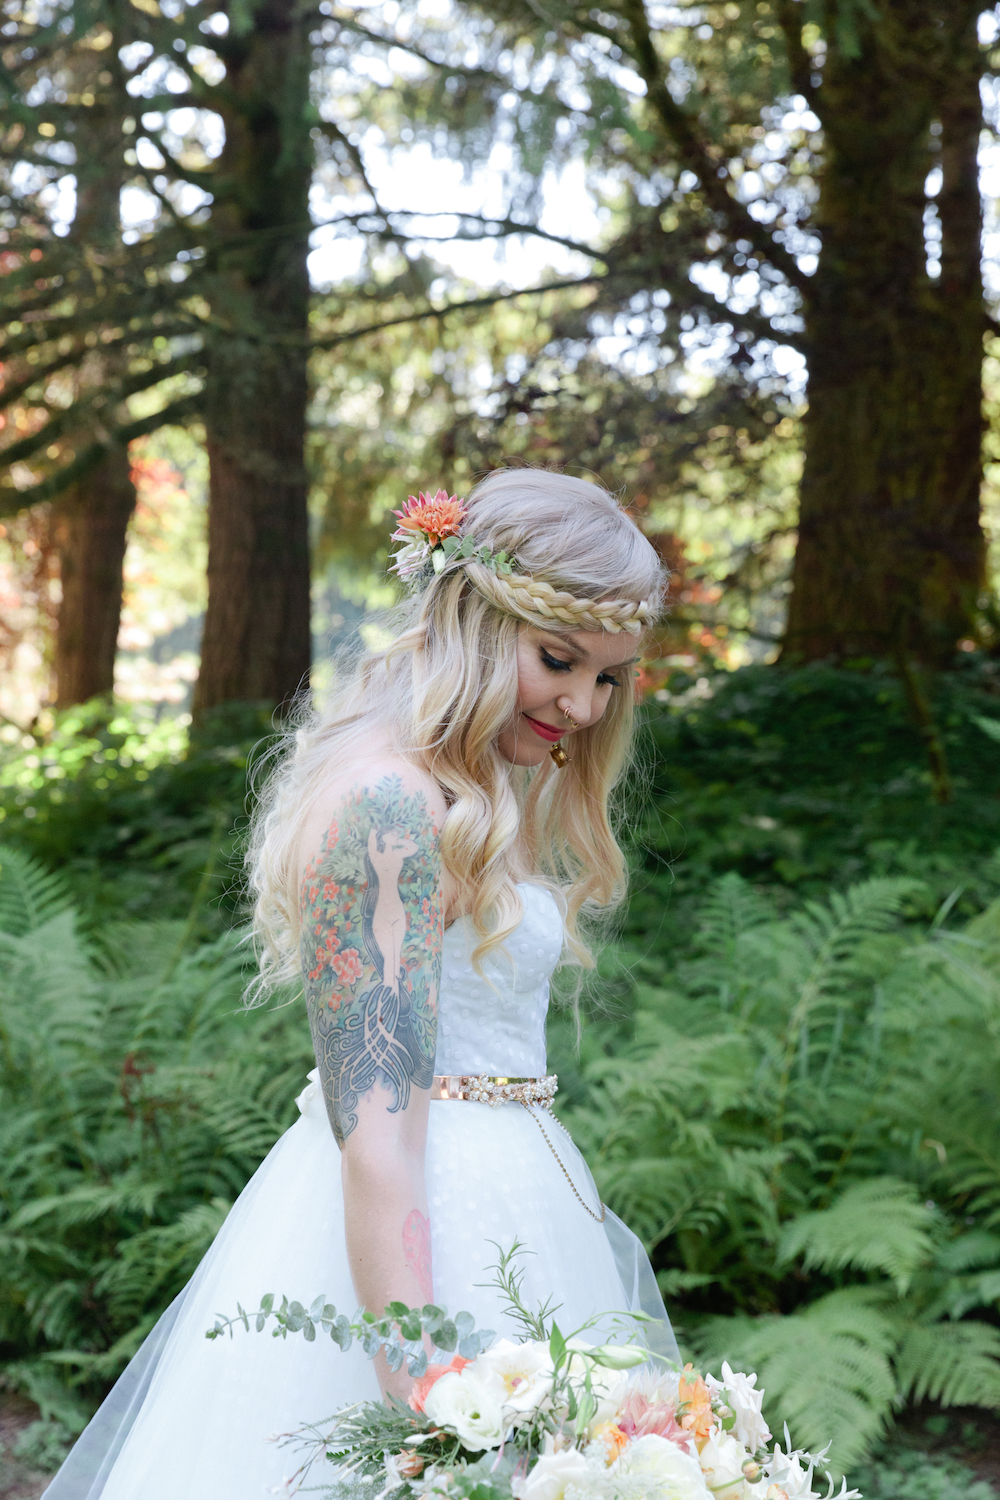 Boho Bridal Fashion Done Right, boho wedding fashion, bohemian bridal fashion, boho wedding braid